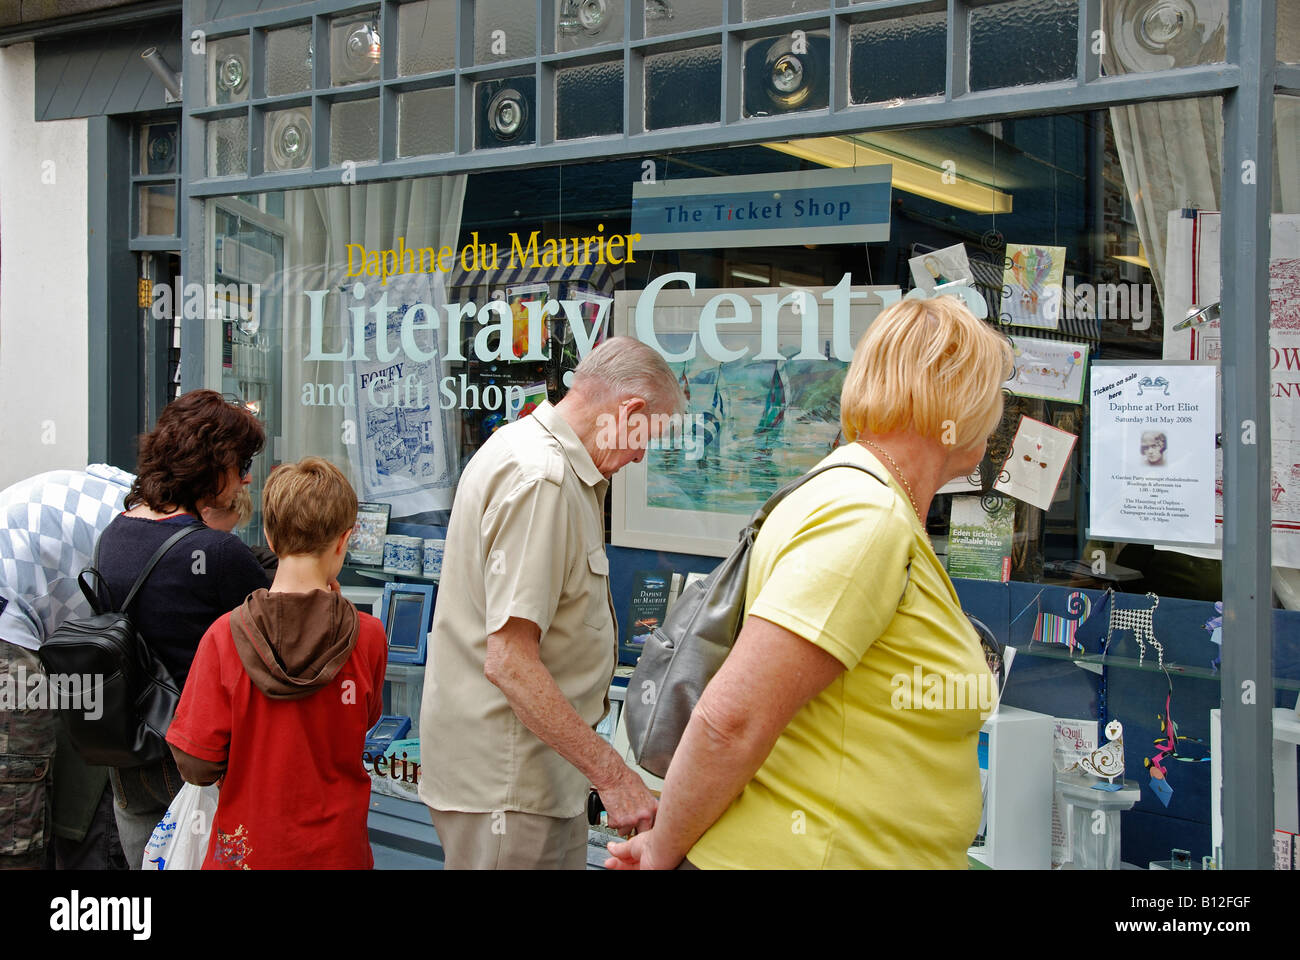 people looking in the window of the 'daphne de maurier' literary centre shop at fowey in cornwall,england,uk - Stock Image